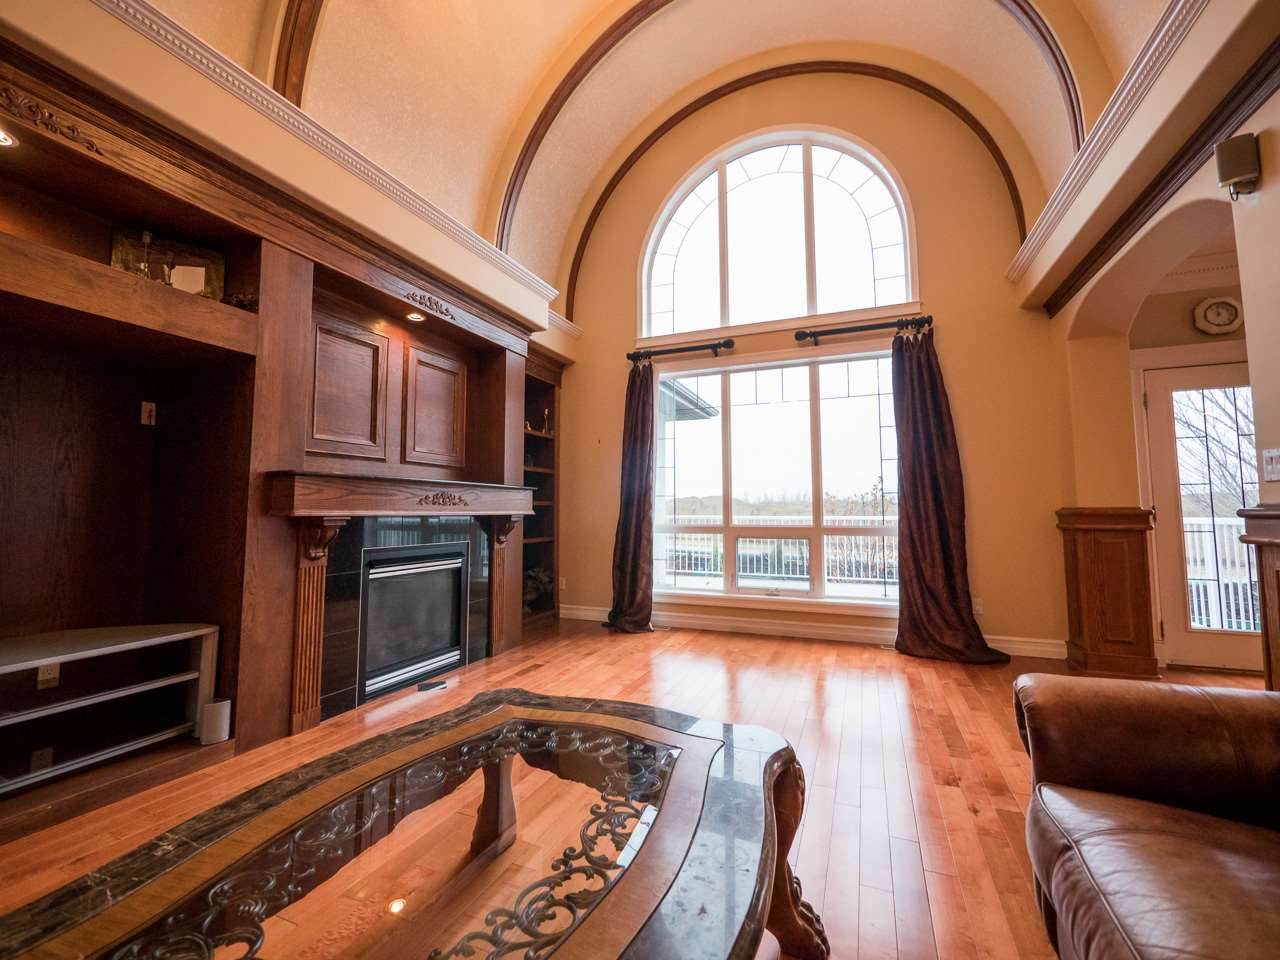 Stunning Great Room with arched rib ceiling, large windows allowing lots of natural light to shine through, and a built-in wall unit with fireplace.